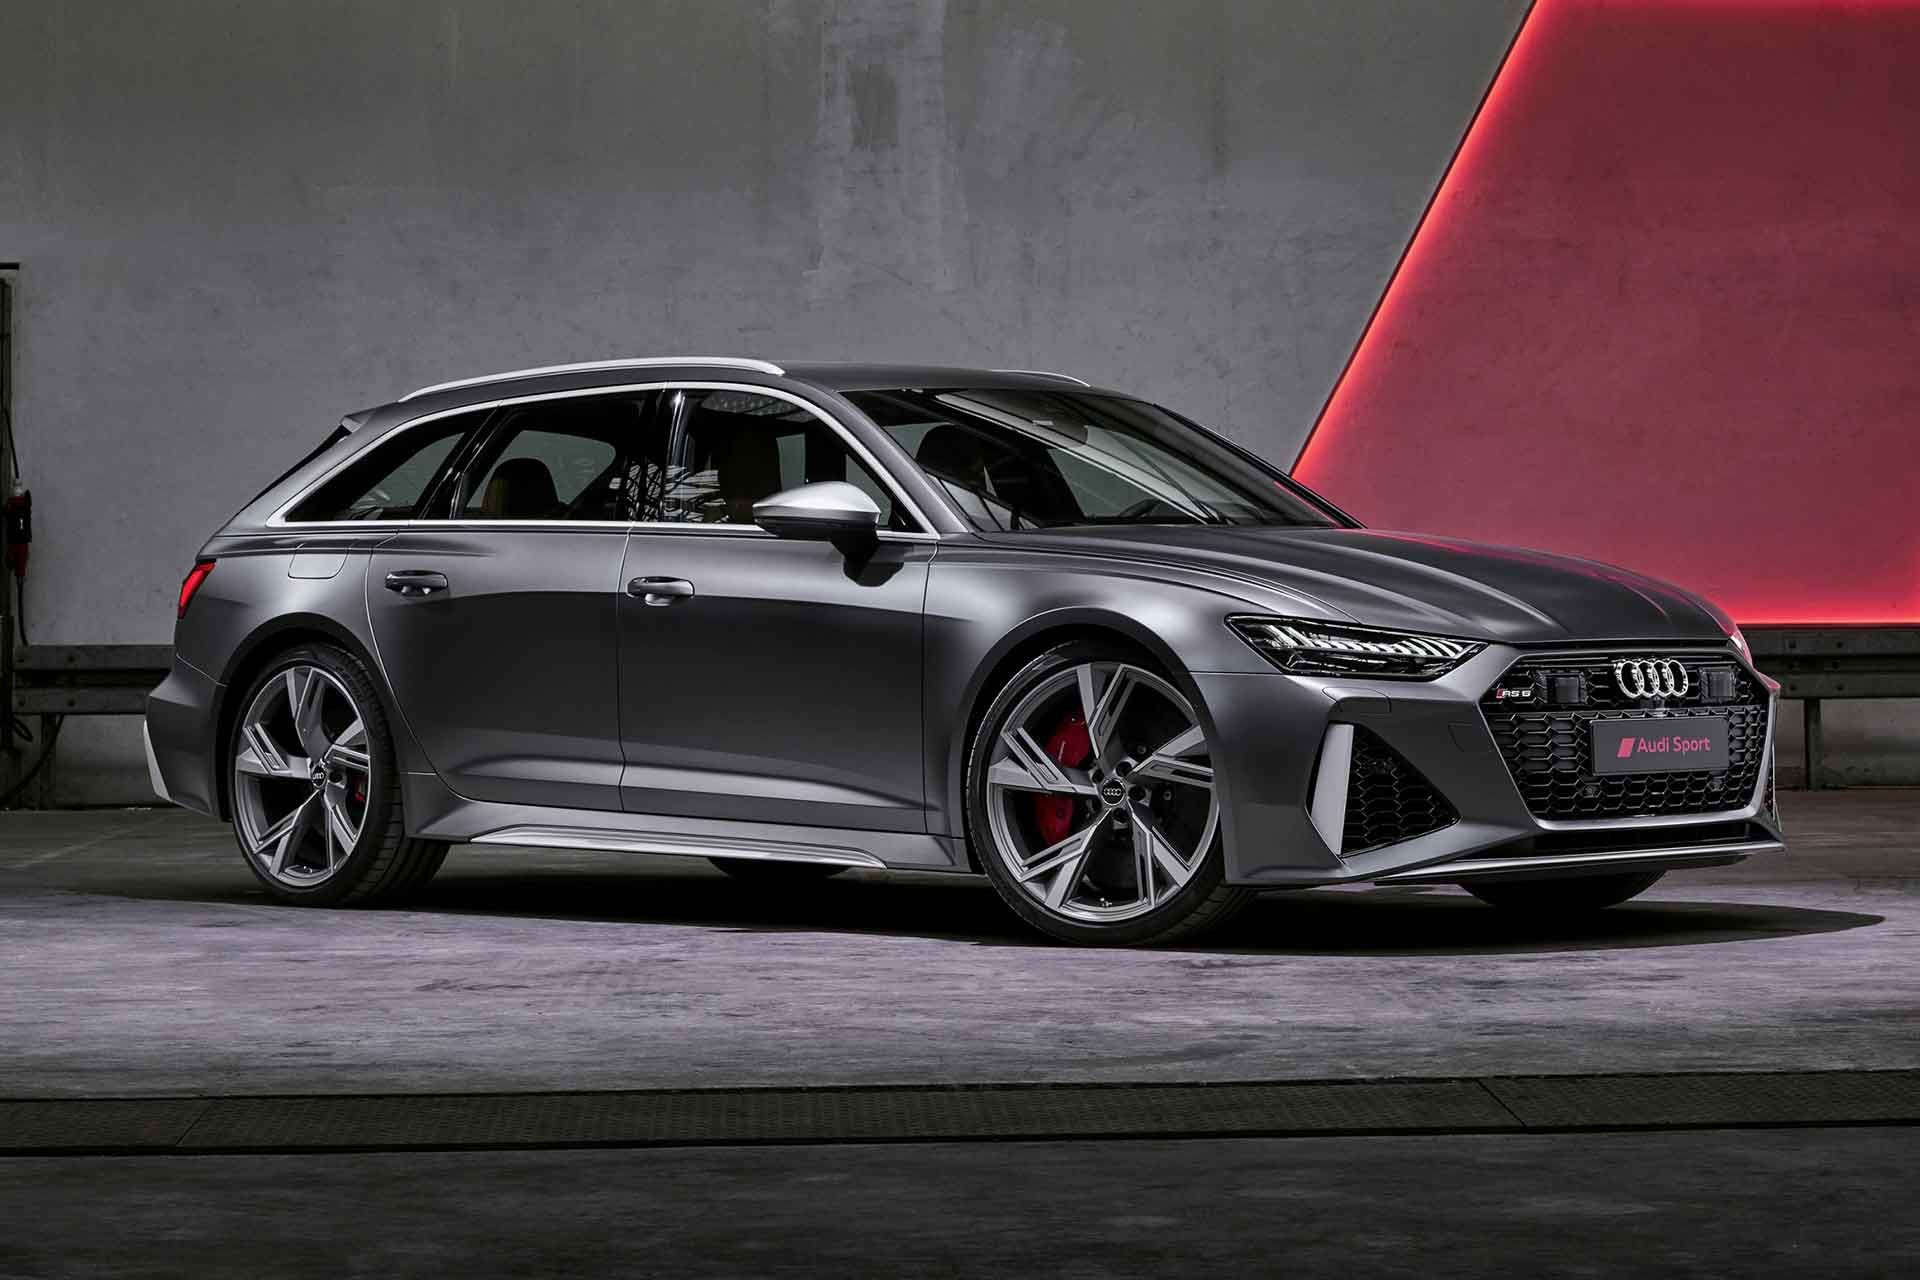 2020 Audi Rs 6 Avant Wagon In 2020 Audi Rs6 Audi Rs Audi Cars